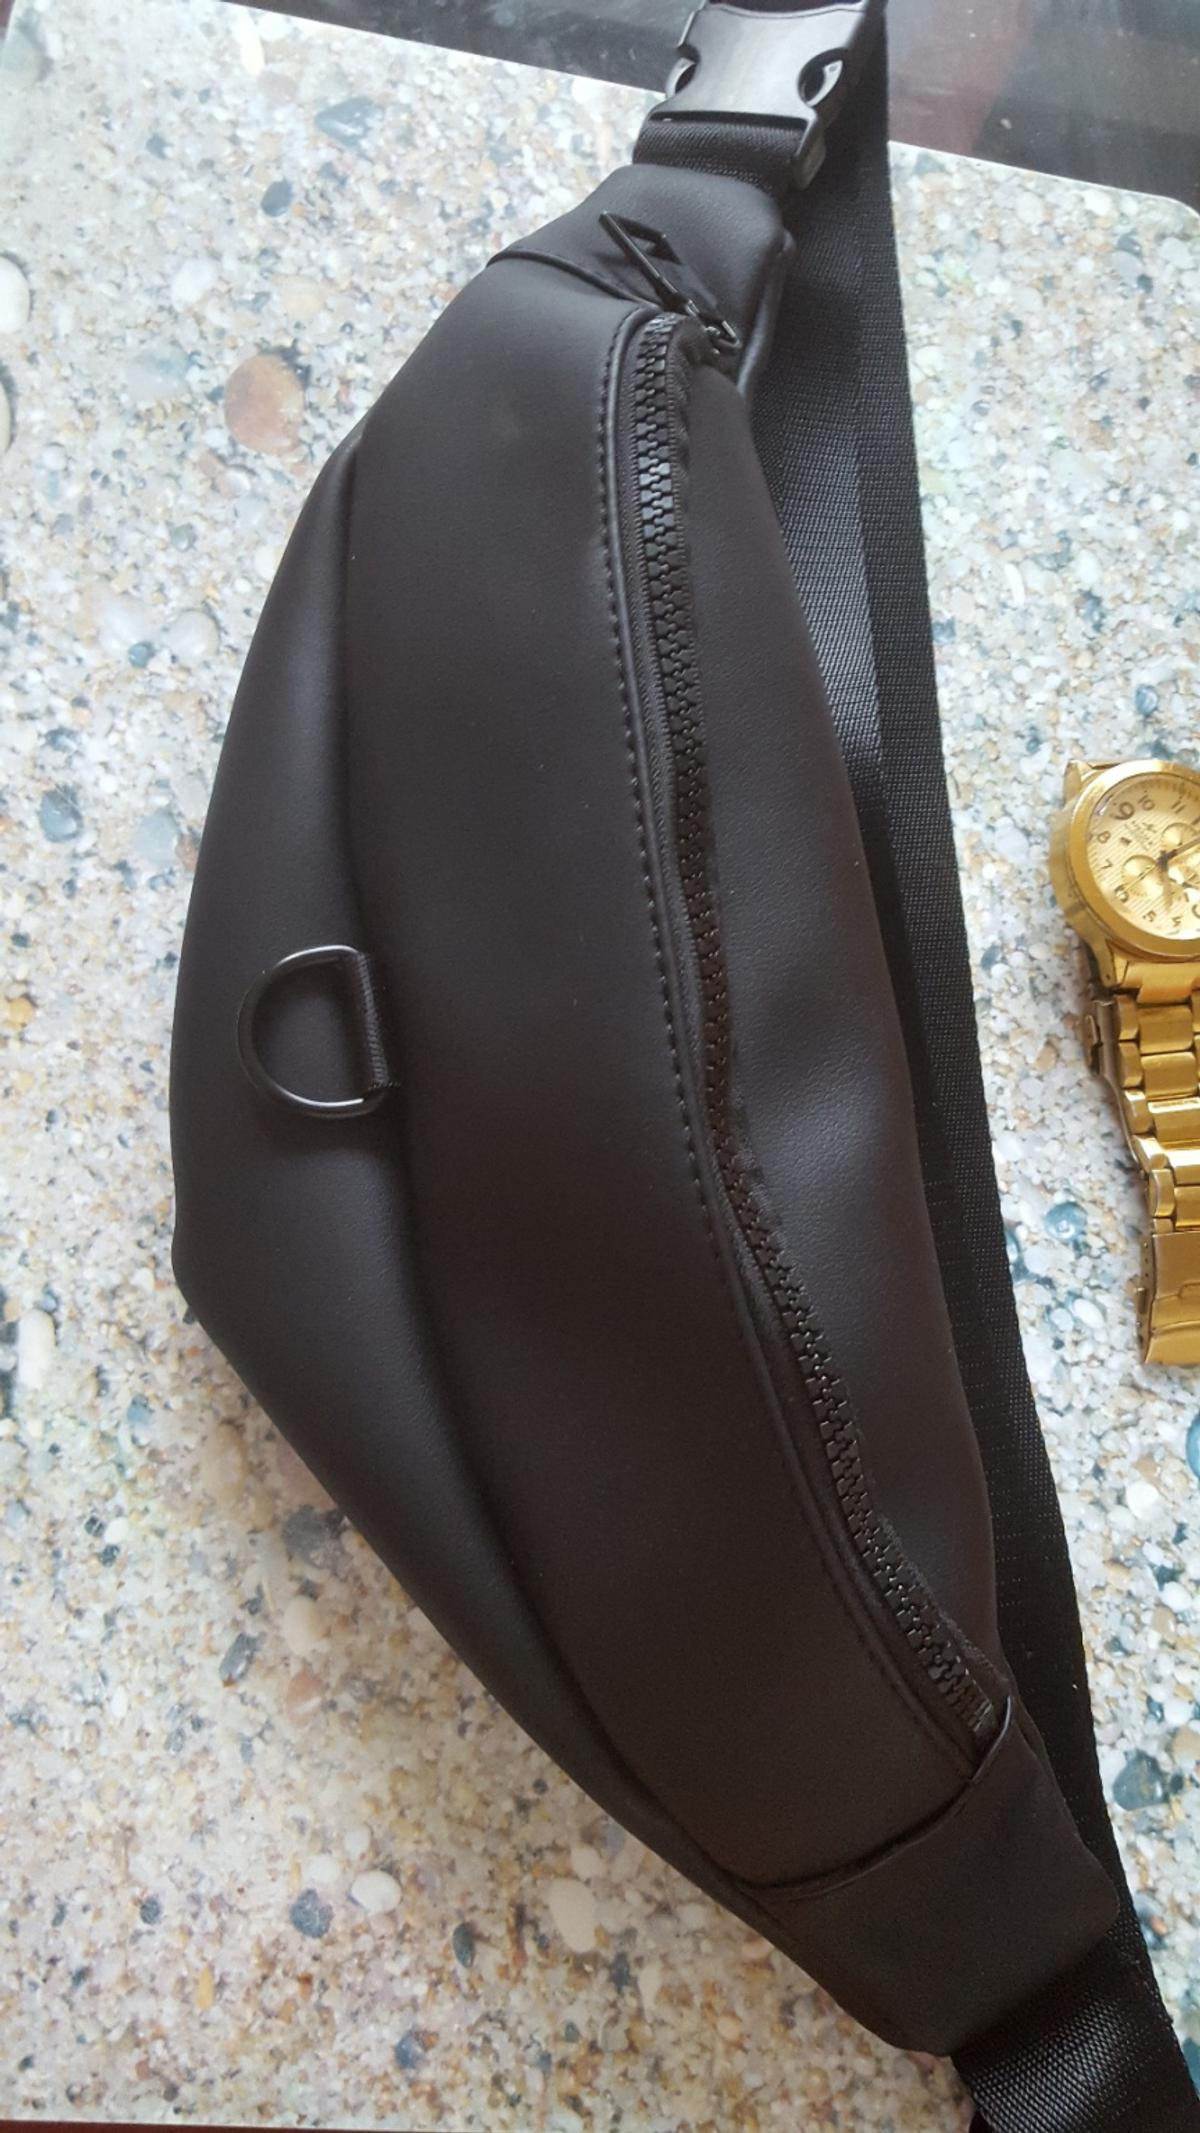 shoulder bag; totally new from Swiss available for sales